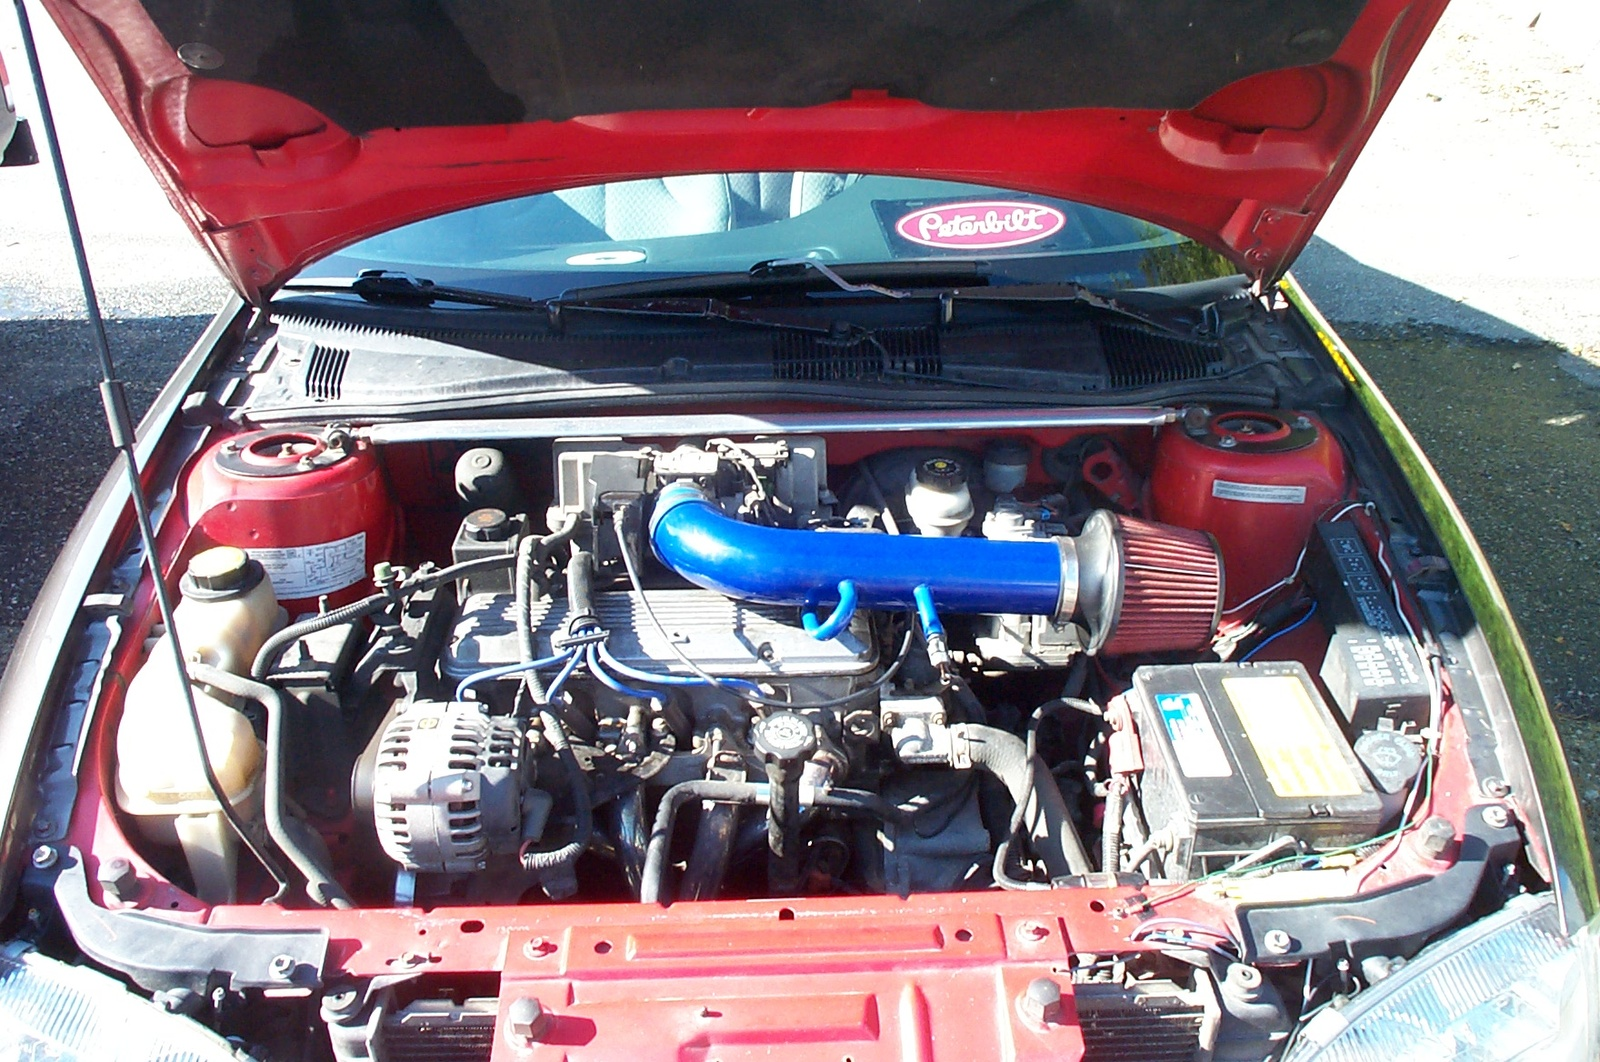 CHEVROLET CAVALIER engine